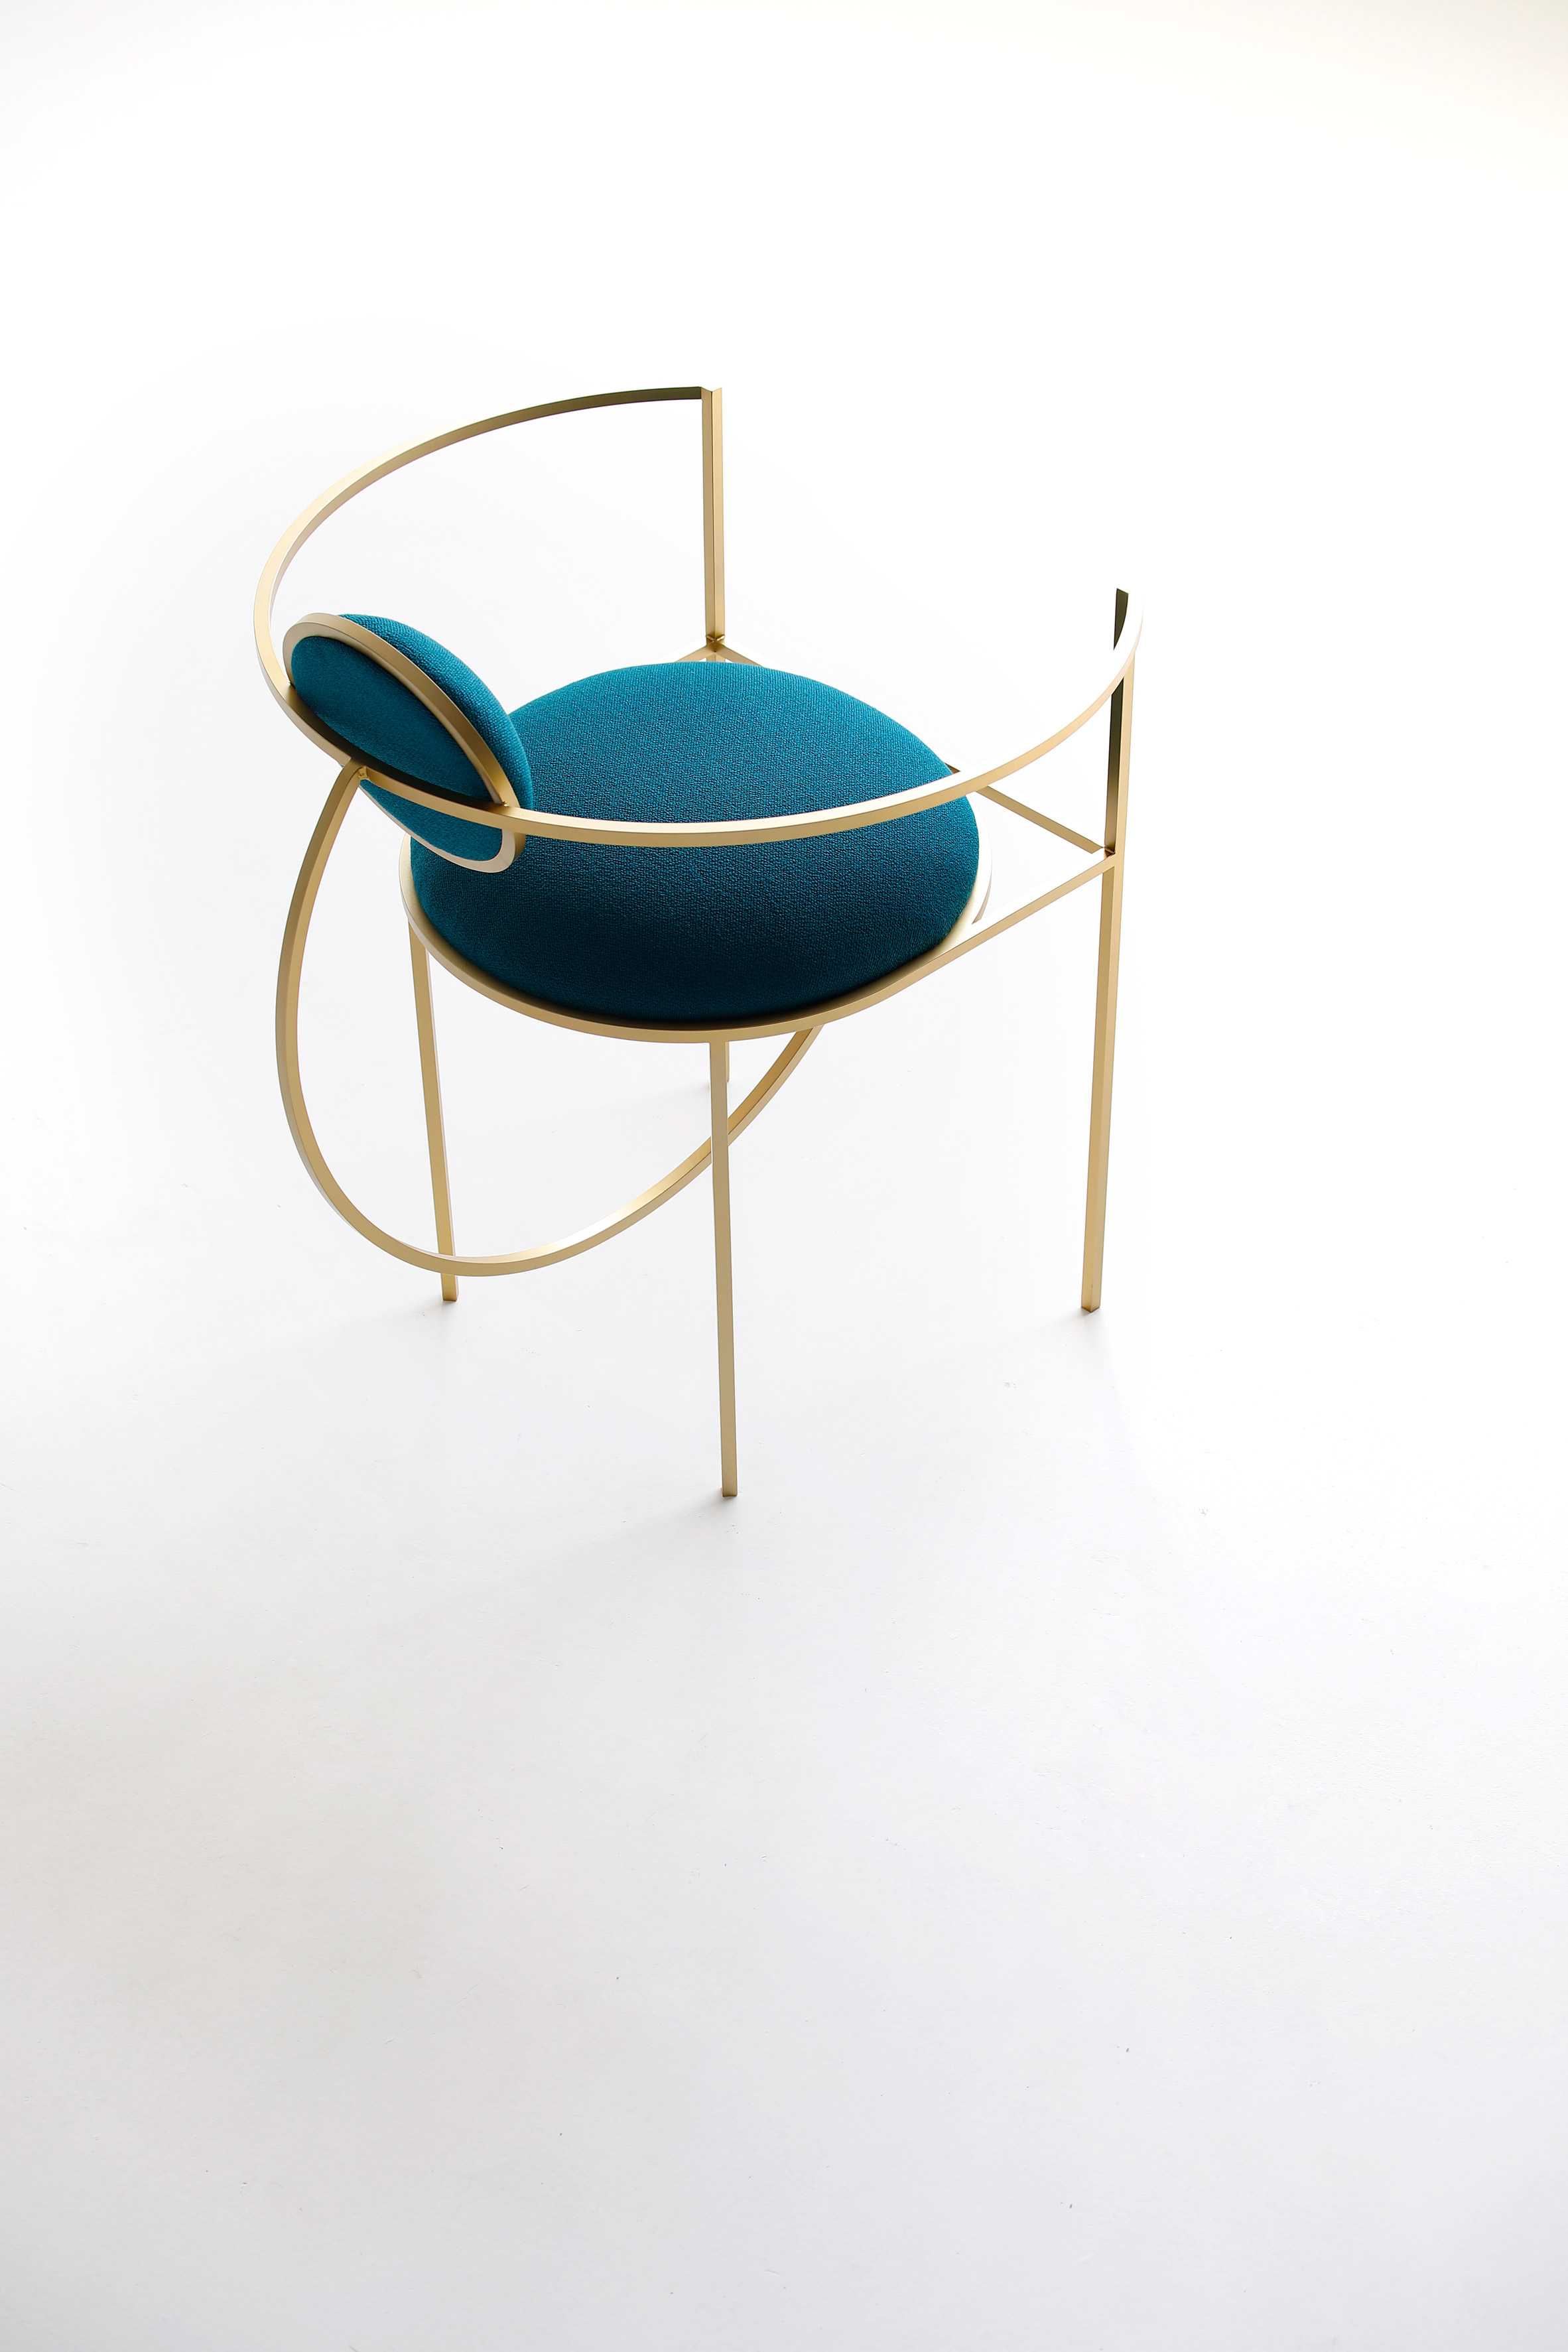 Lara Bohinc takes cues from celestial forms for first seating collection插图2